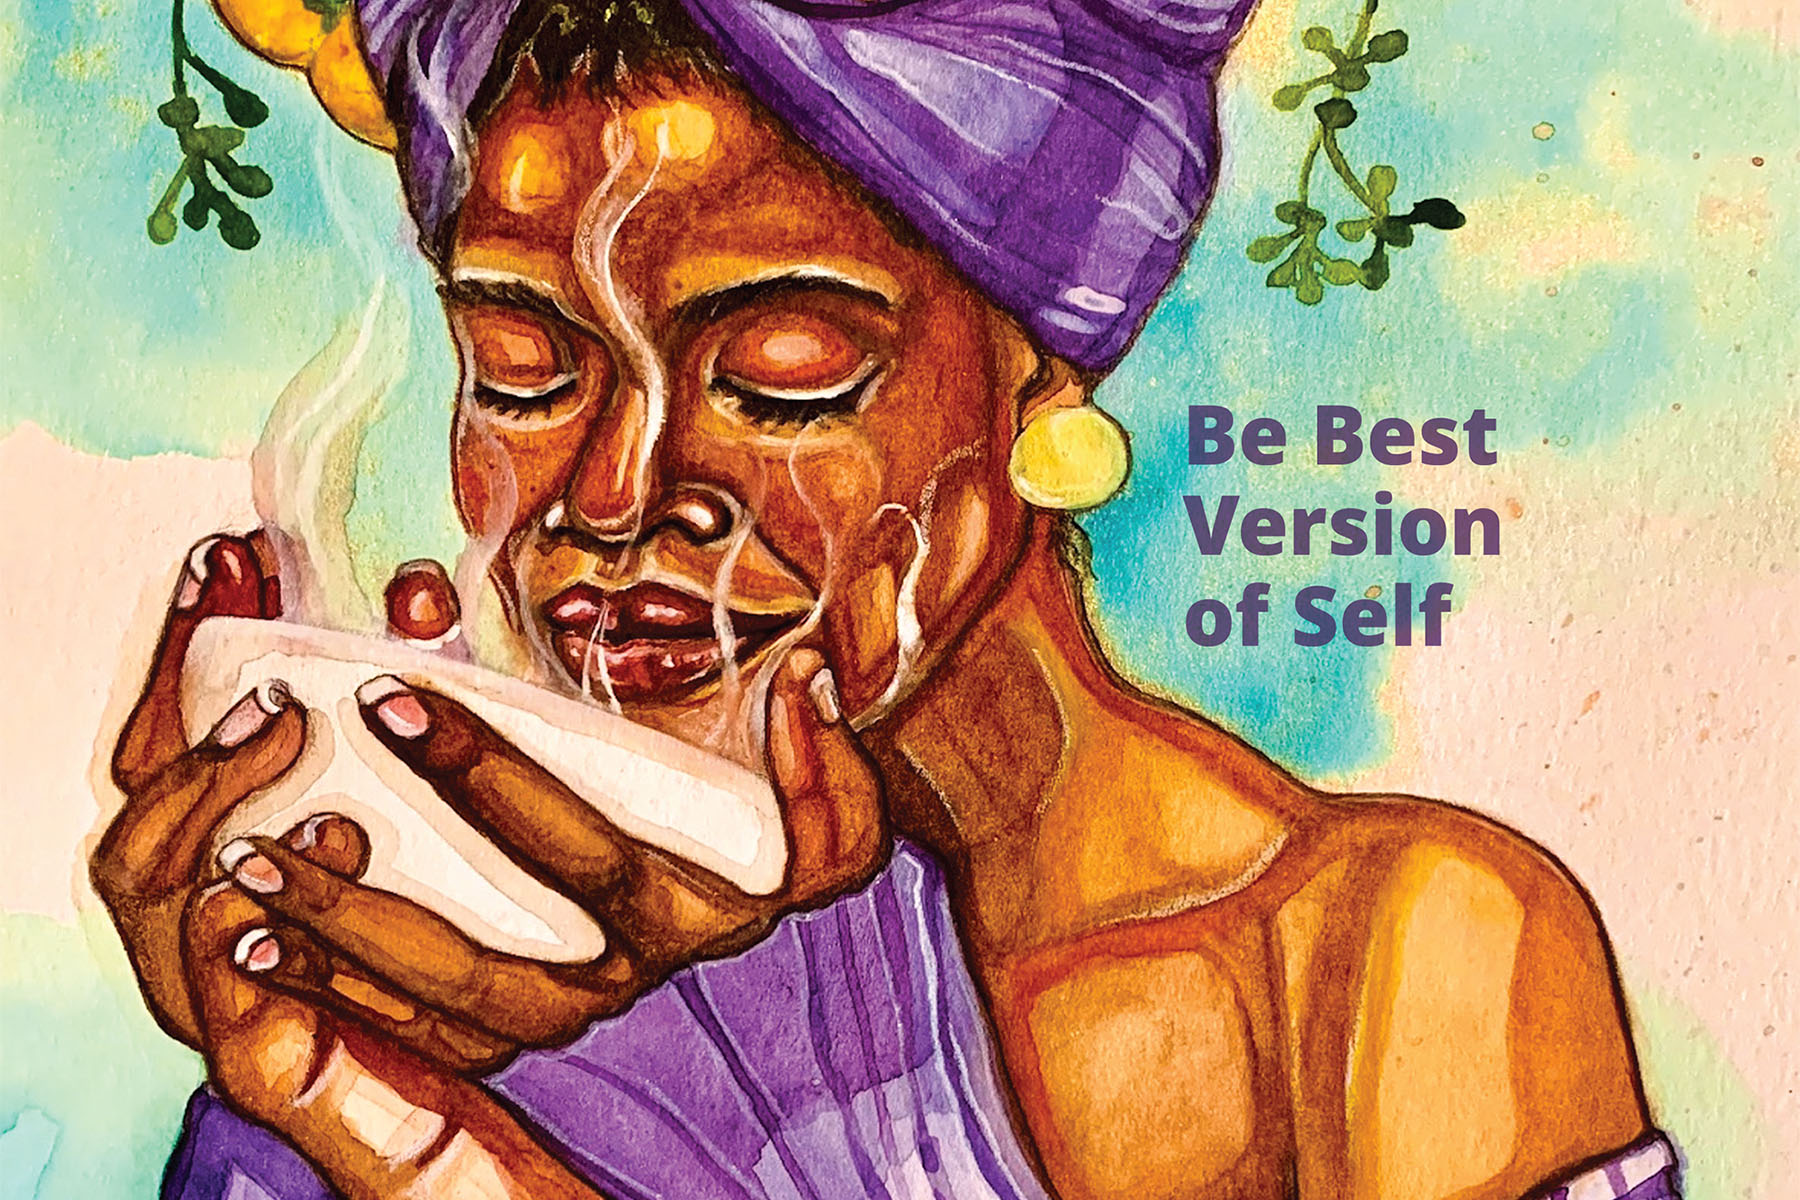 Be Best Version of Self Illustration: Keeping Your Peace / Artist: Alice Y. Traore, A self-taught watercolor artist